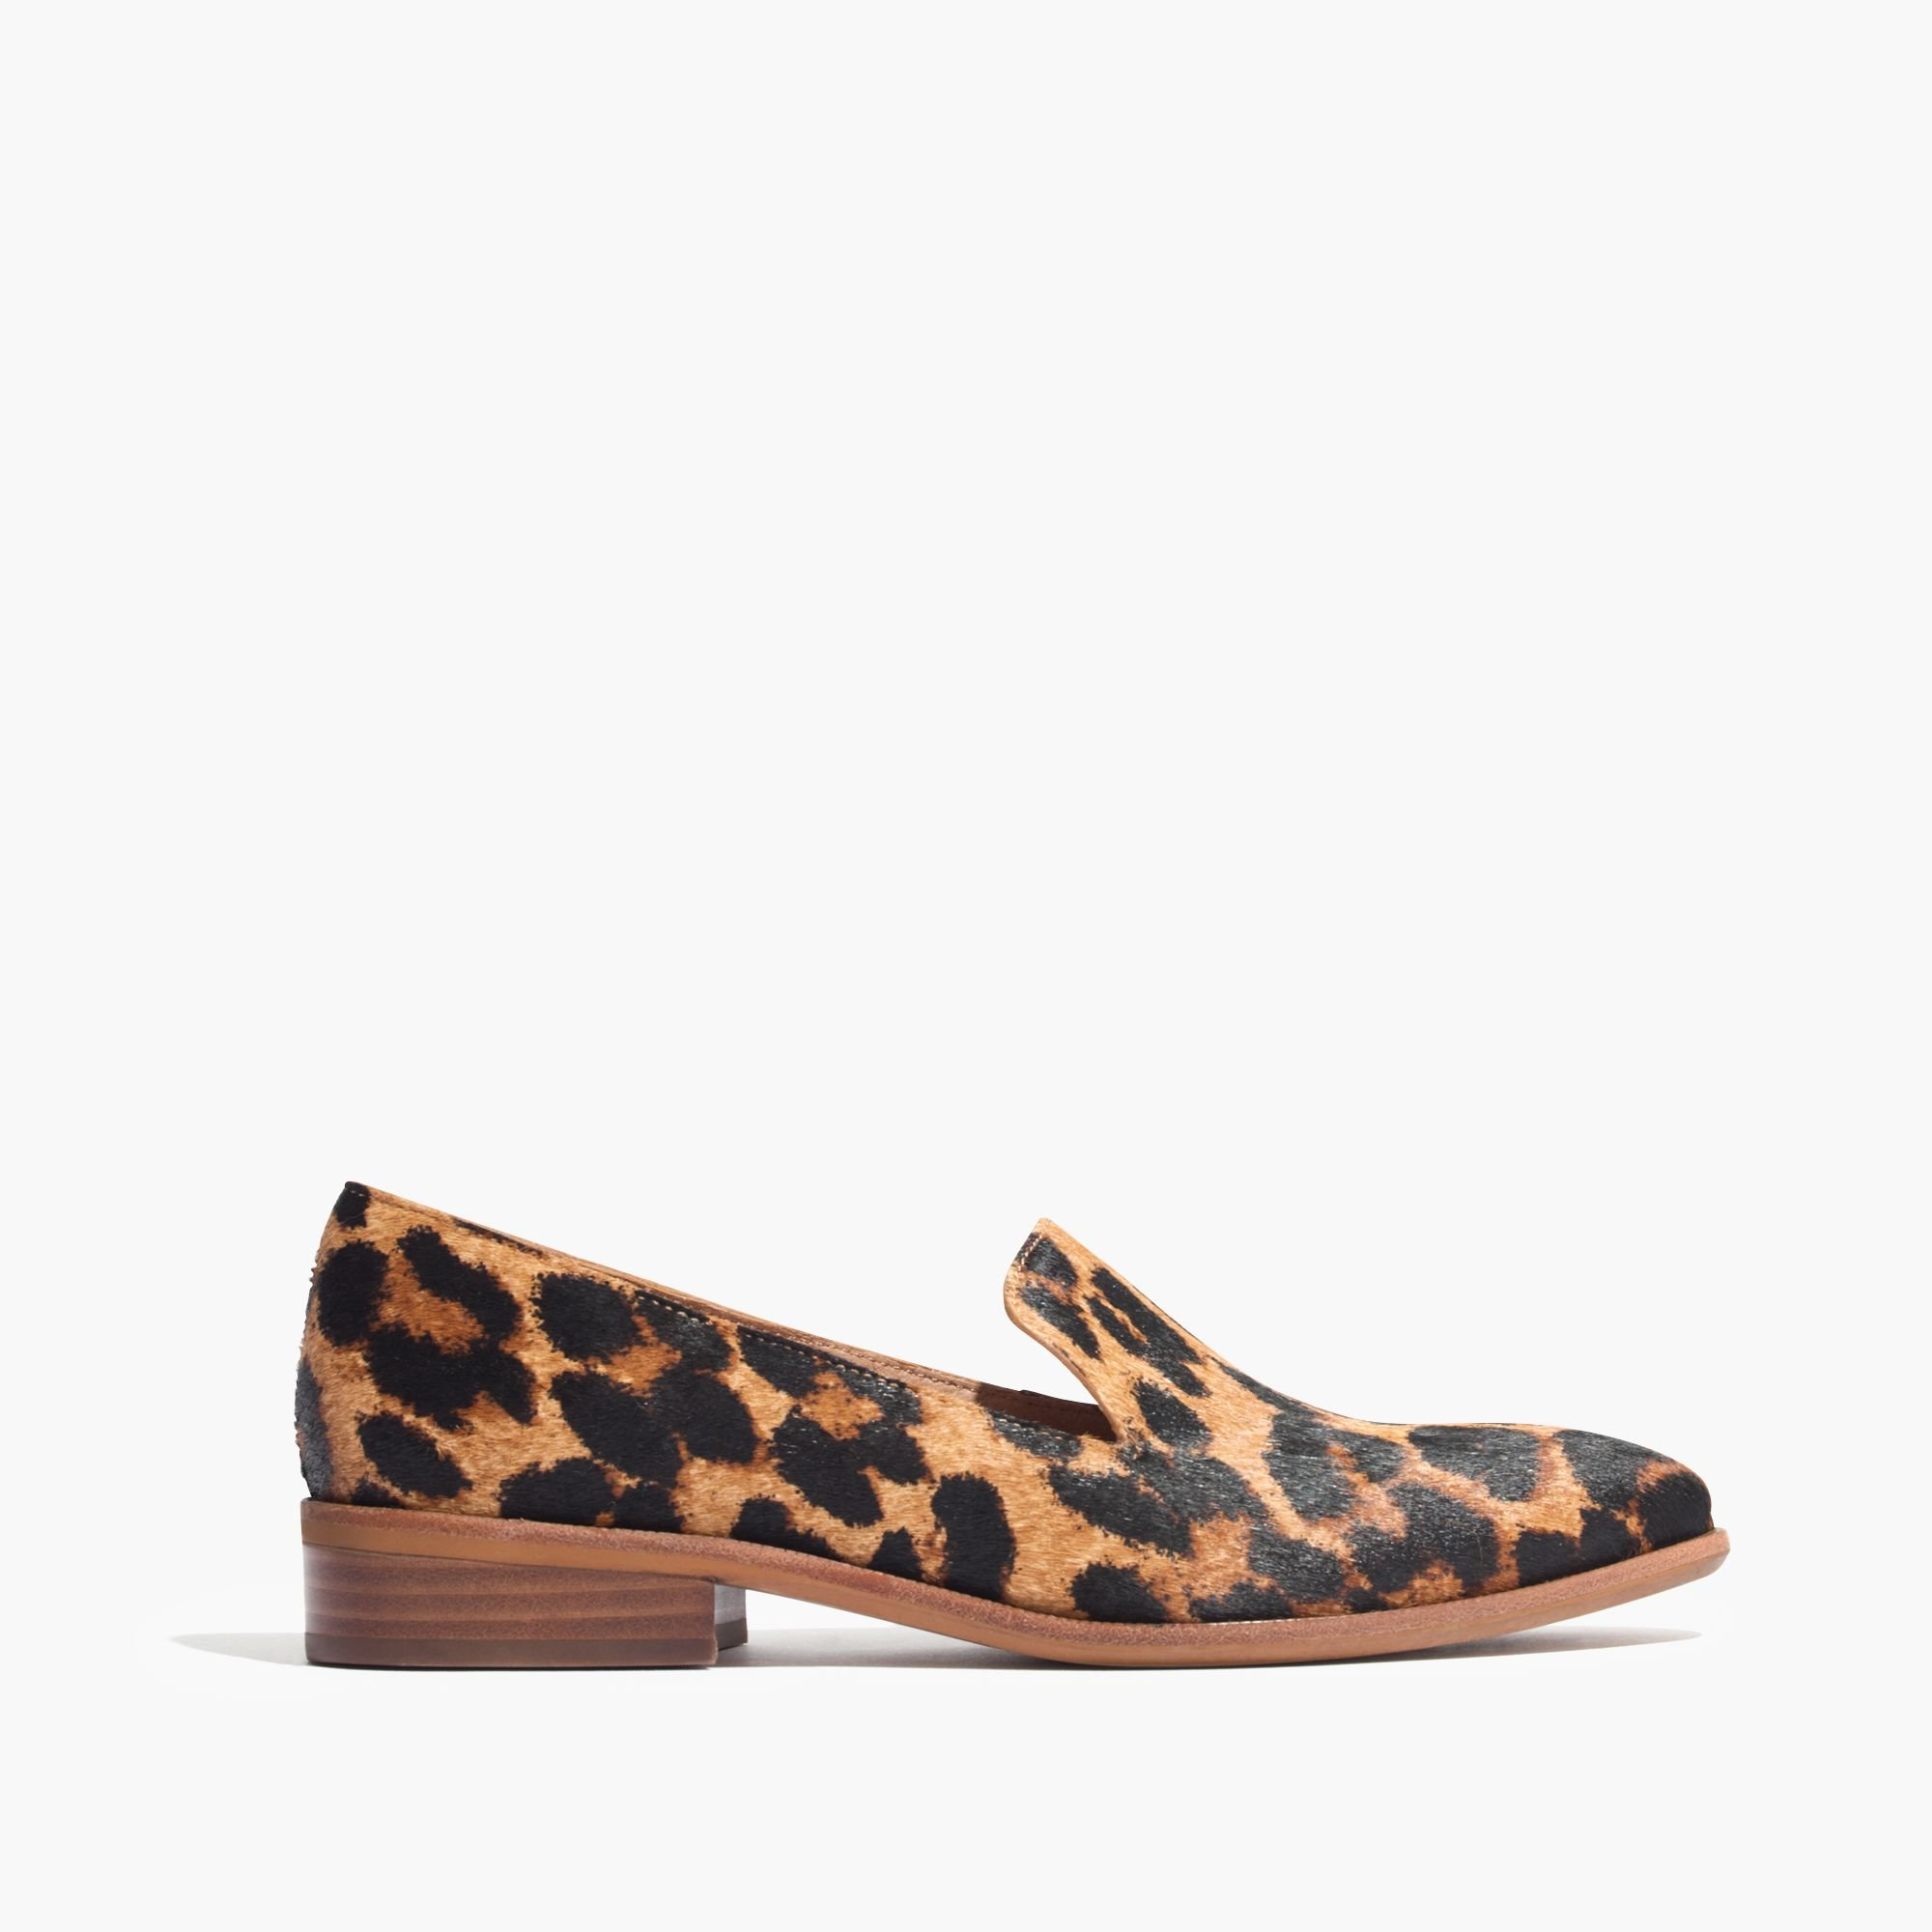 468ee3c577d Lyst - Madewell The Orson Loafer In Leopard Print